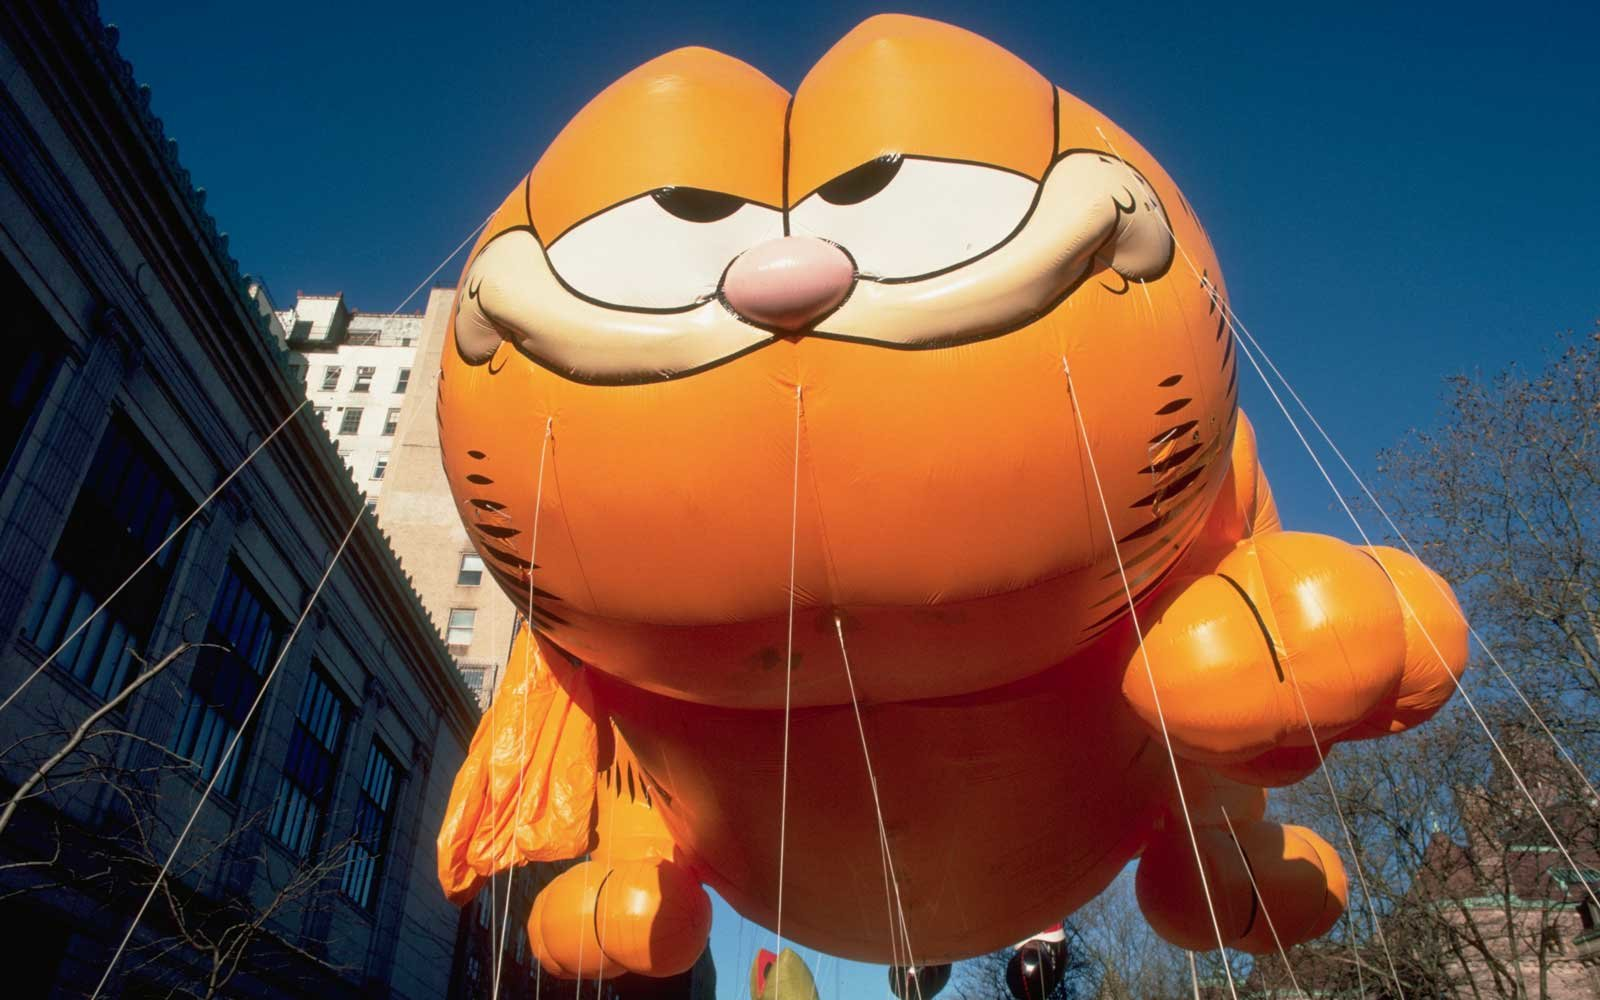 A Parade Balloon